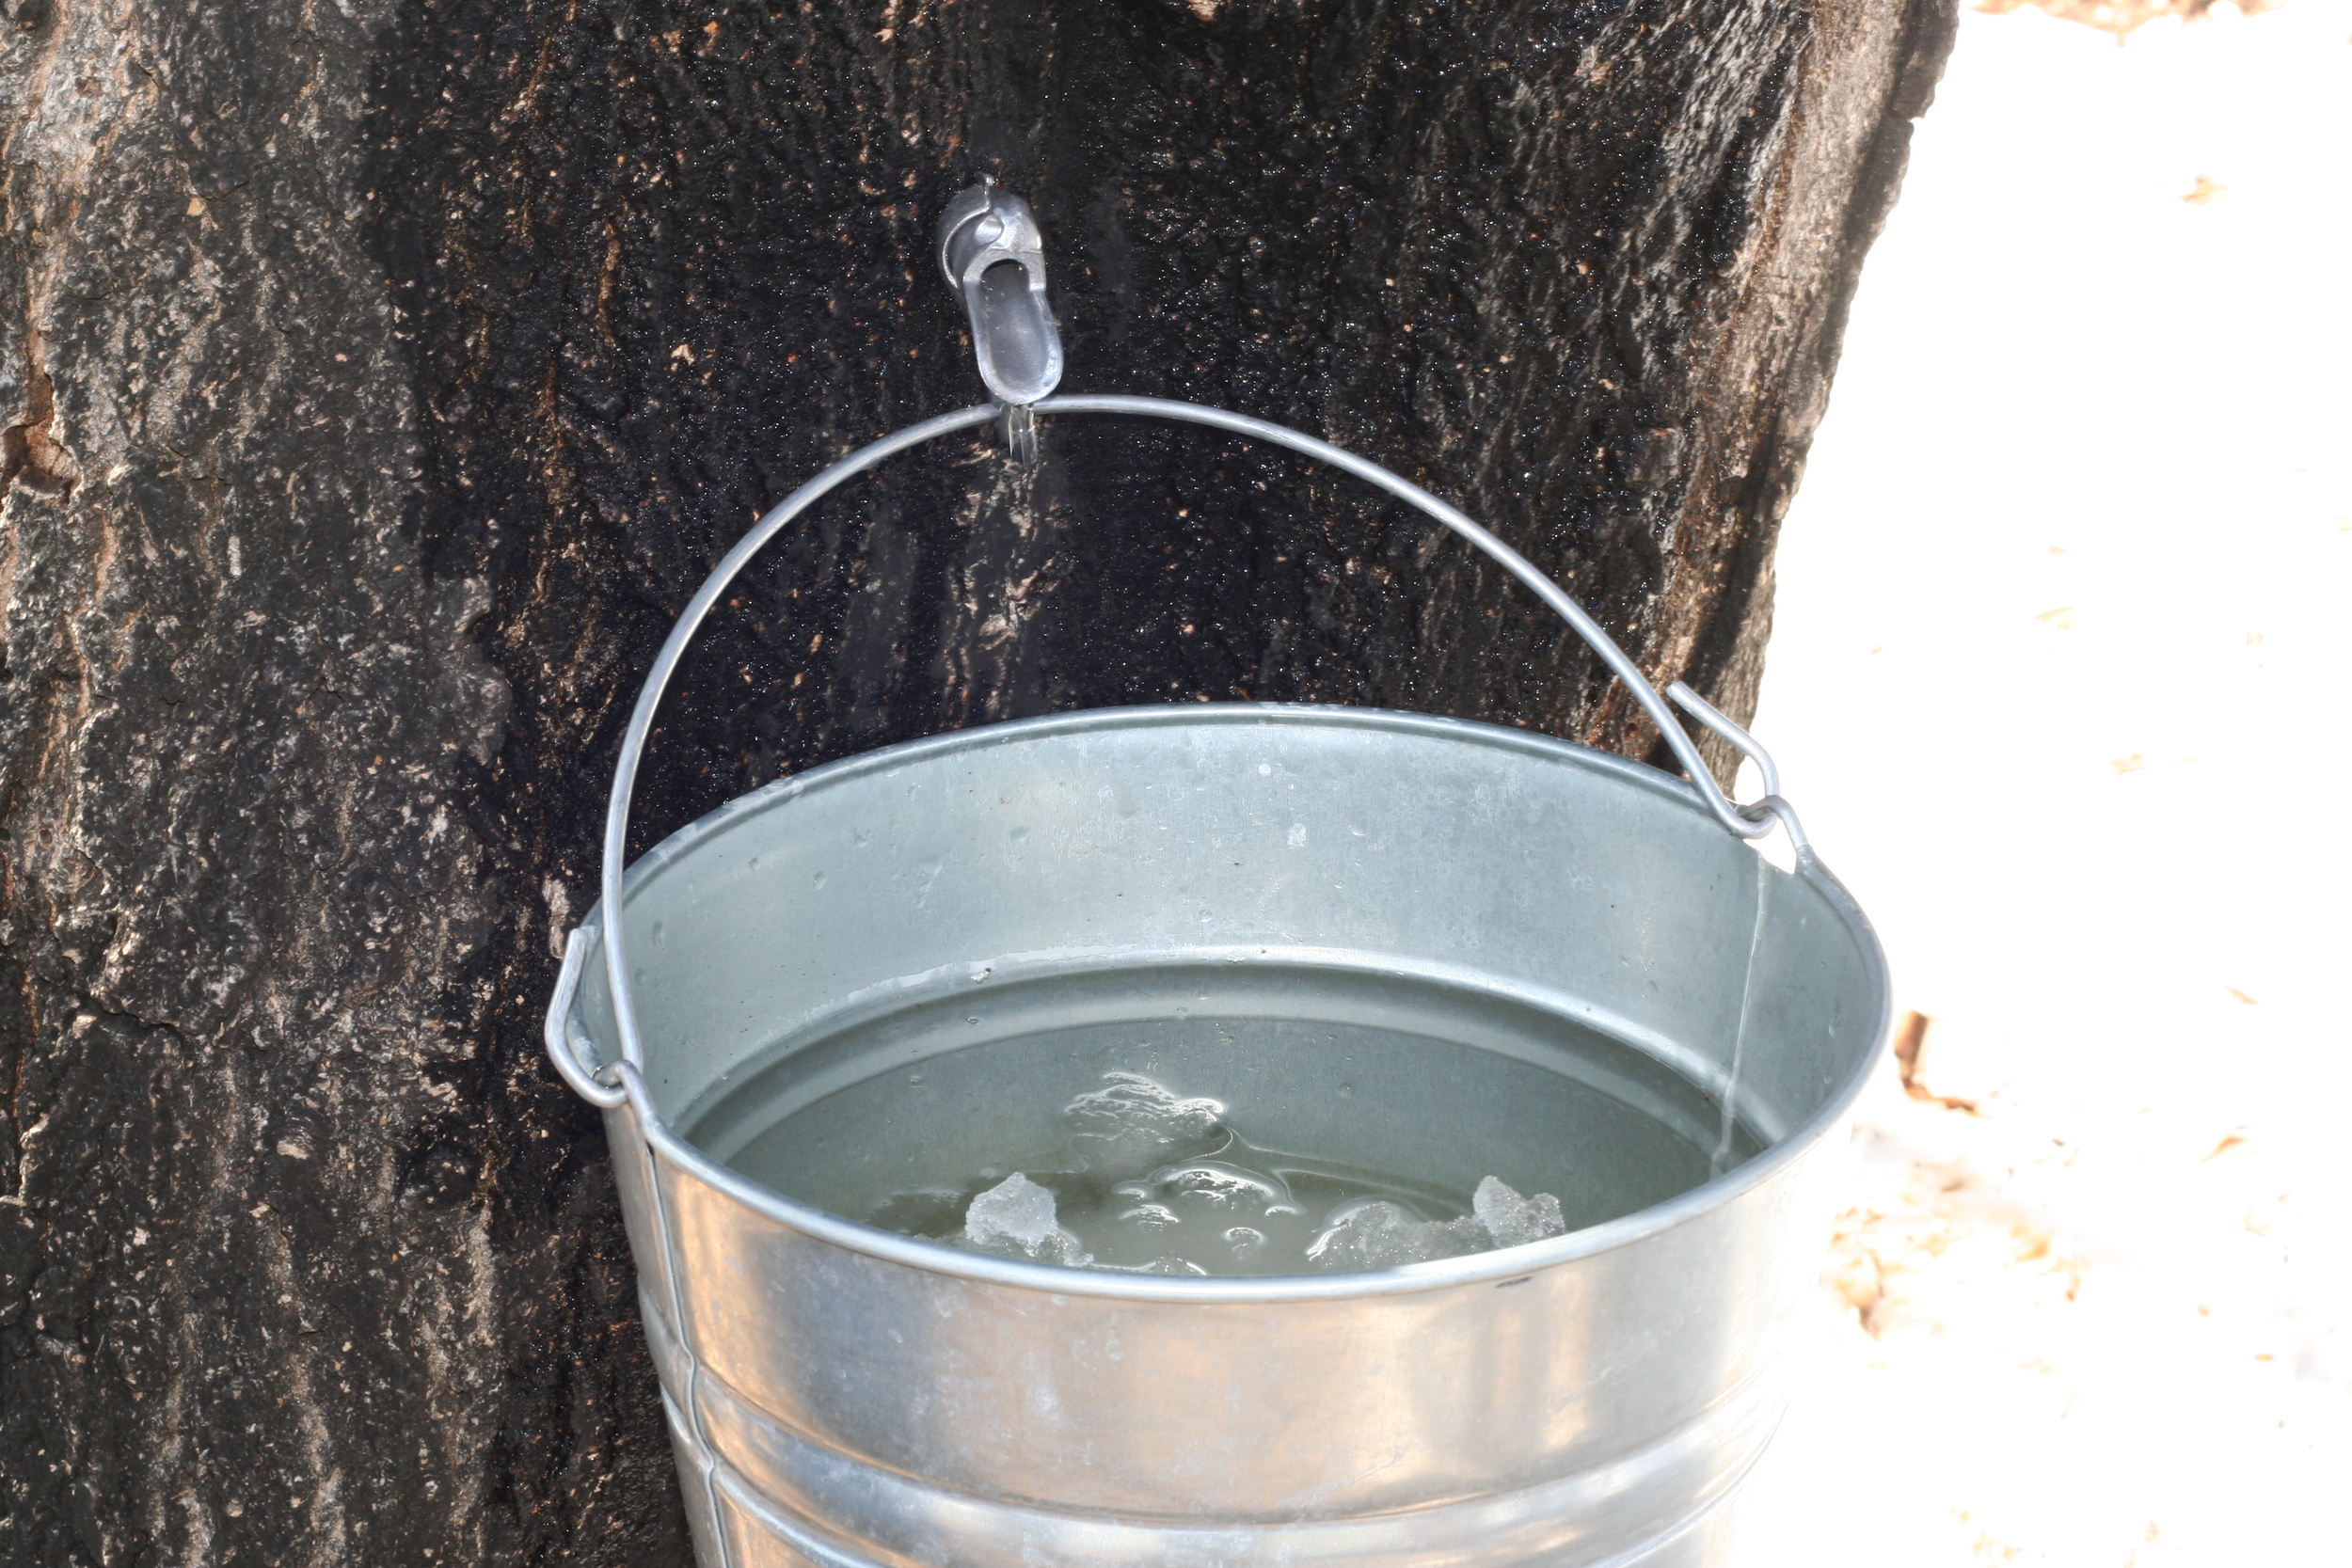 Tree being tapped